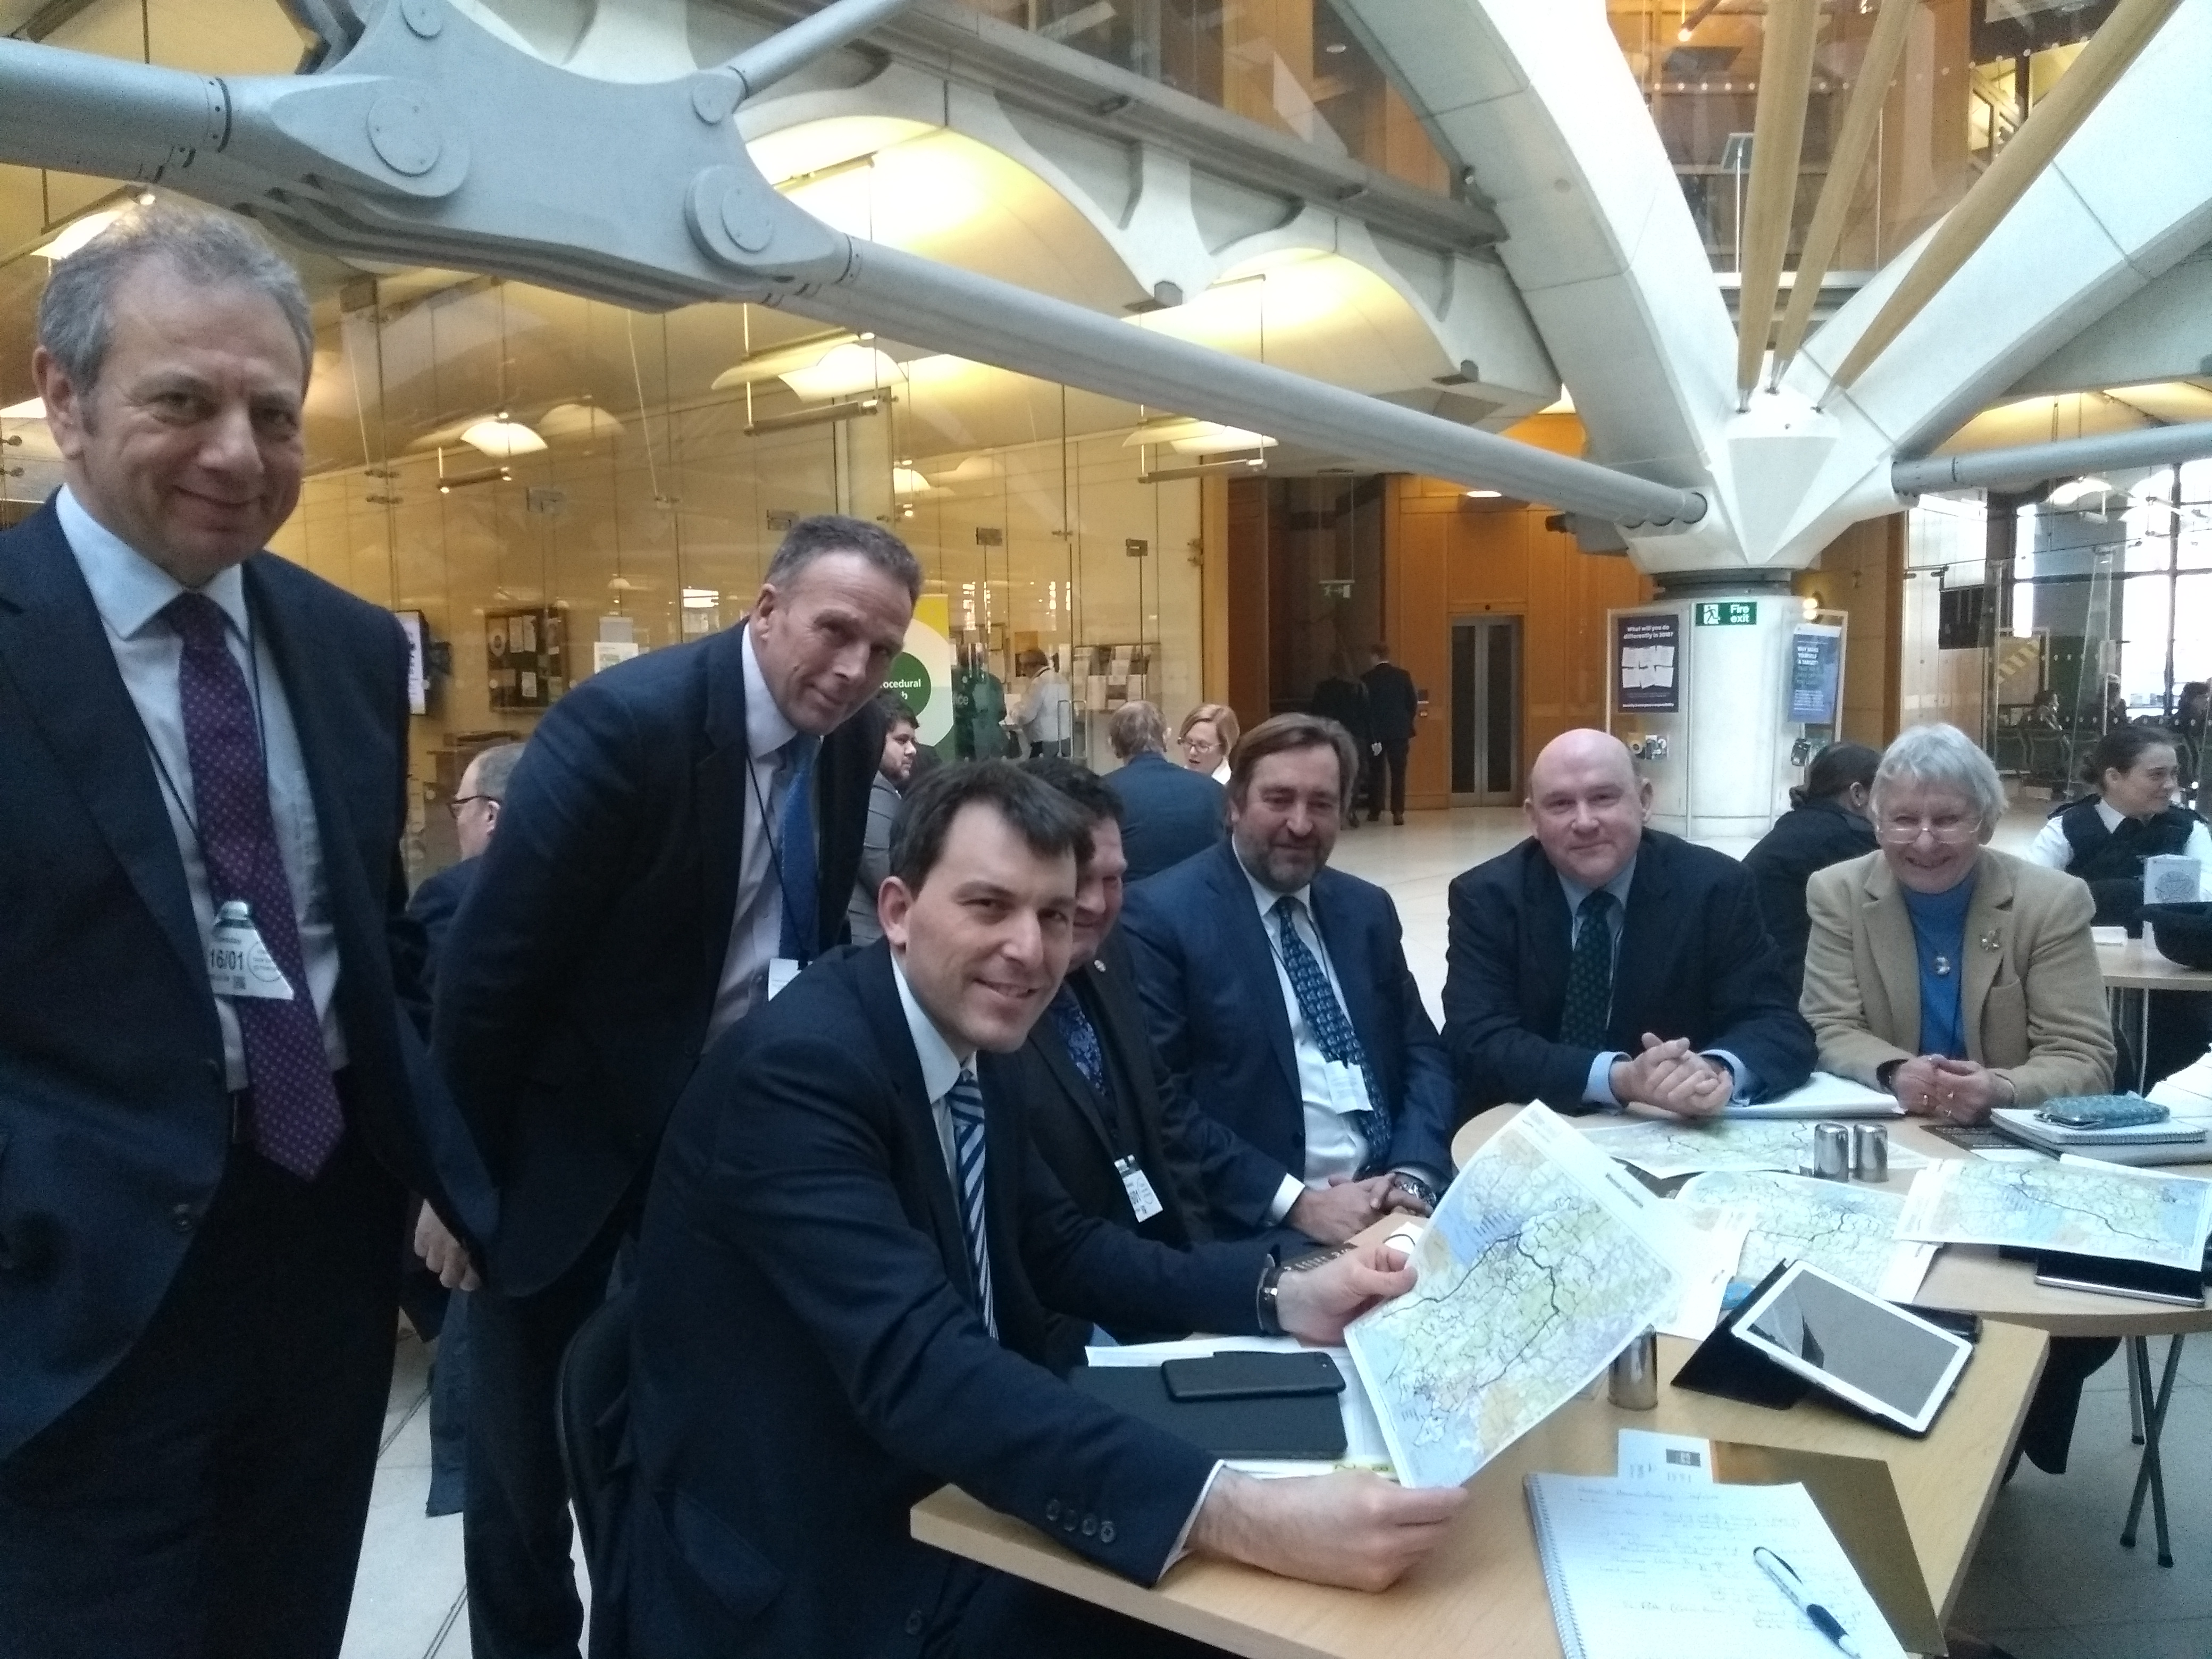 With South West council leaders at Portcullis House in London to lobby Ministers about the North South connectivity improvements.